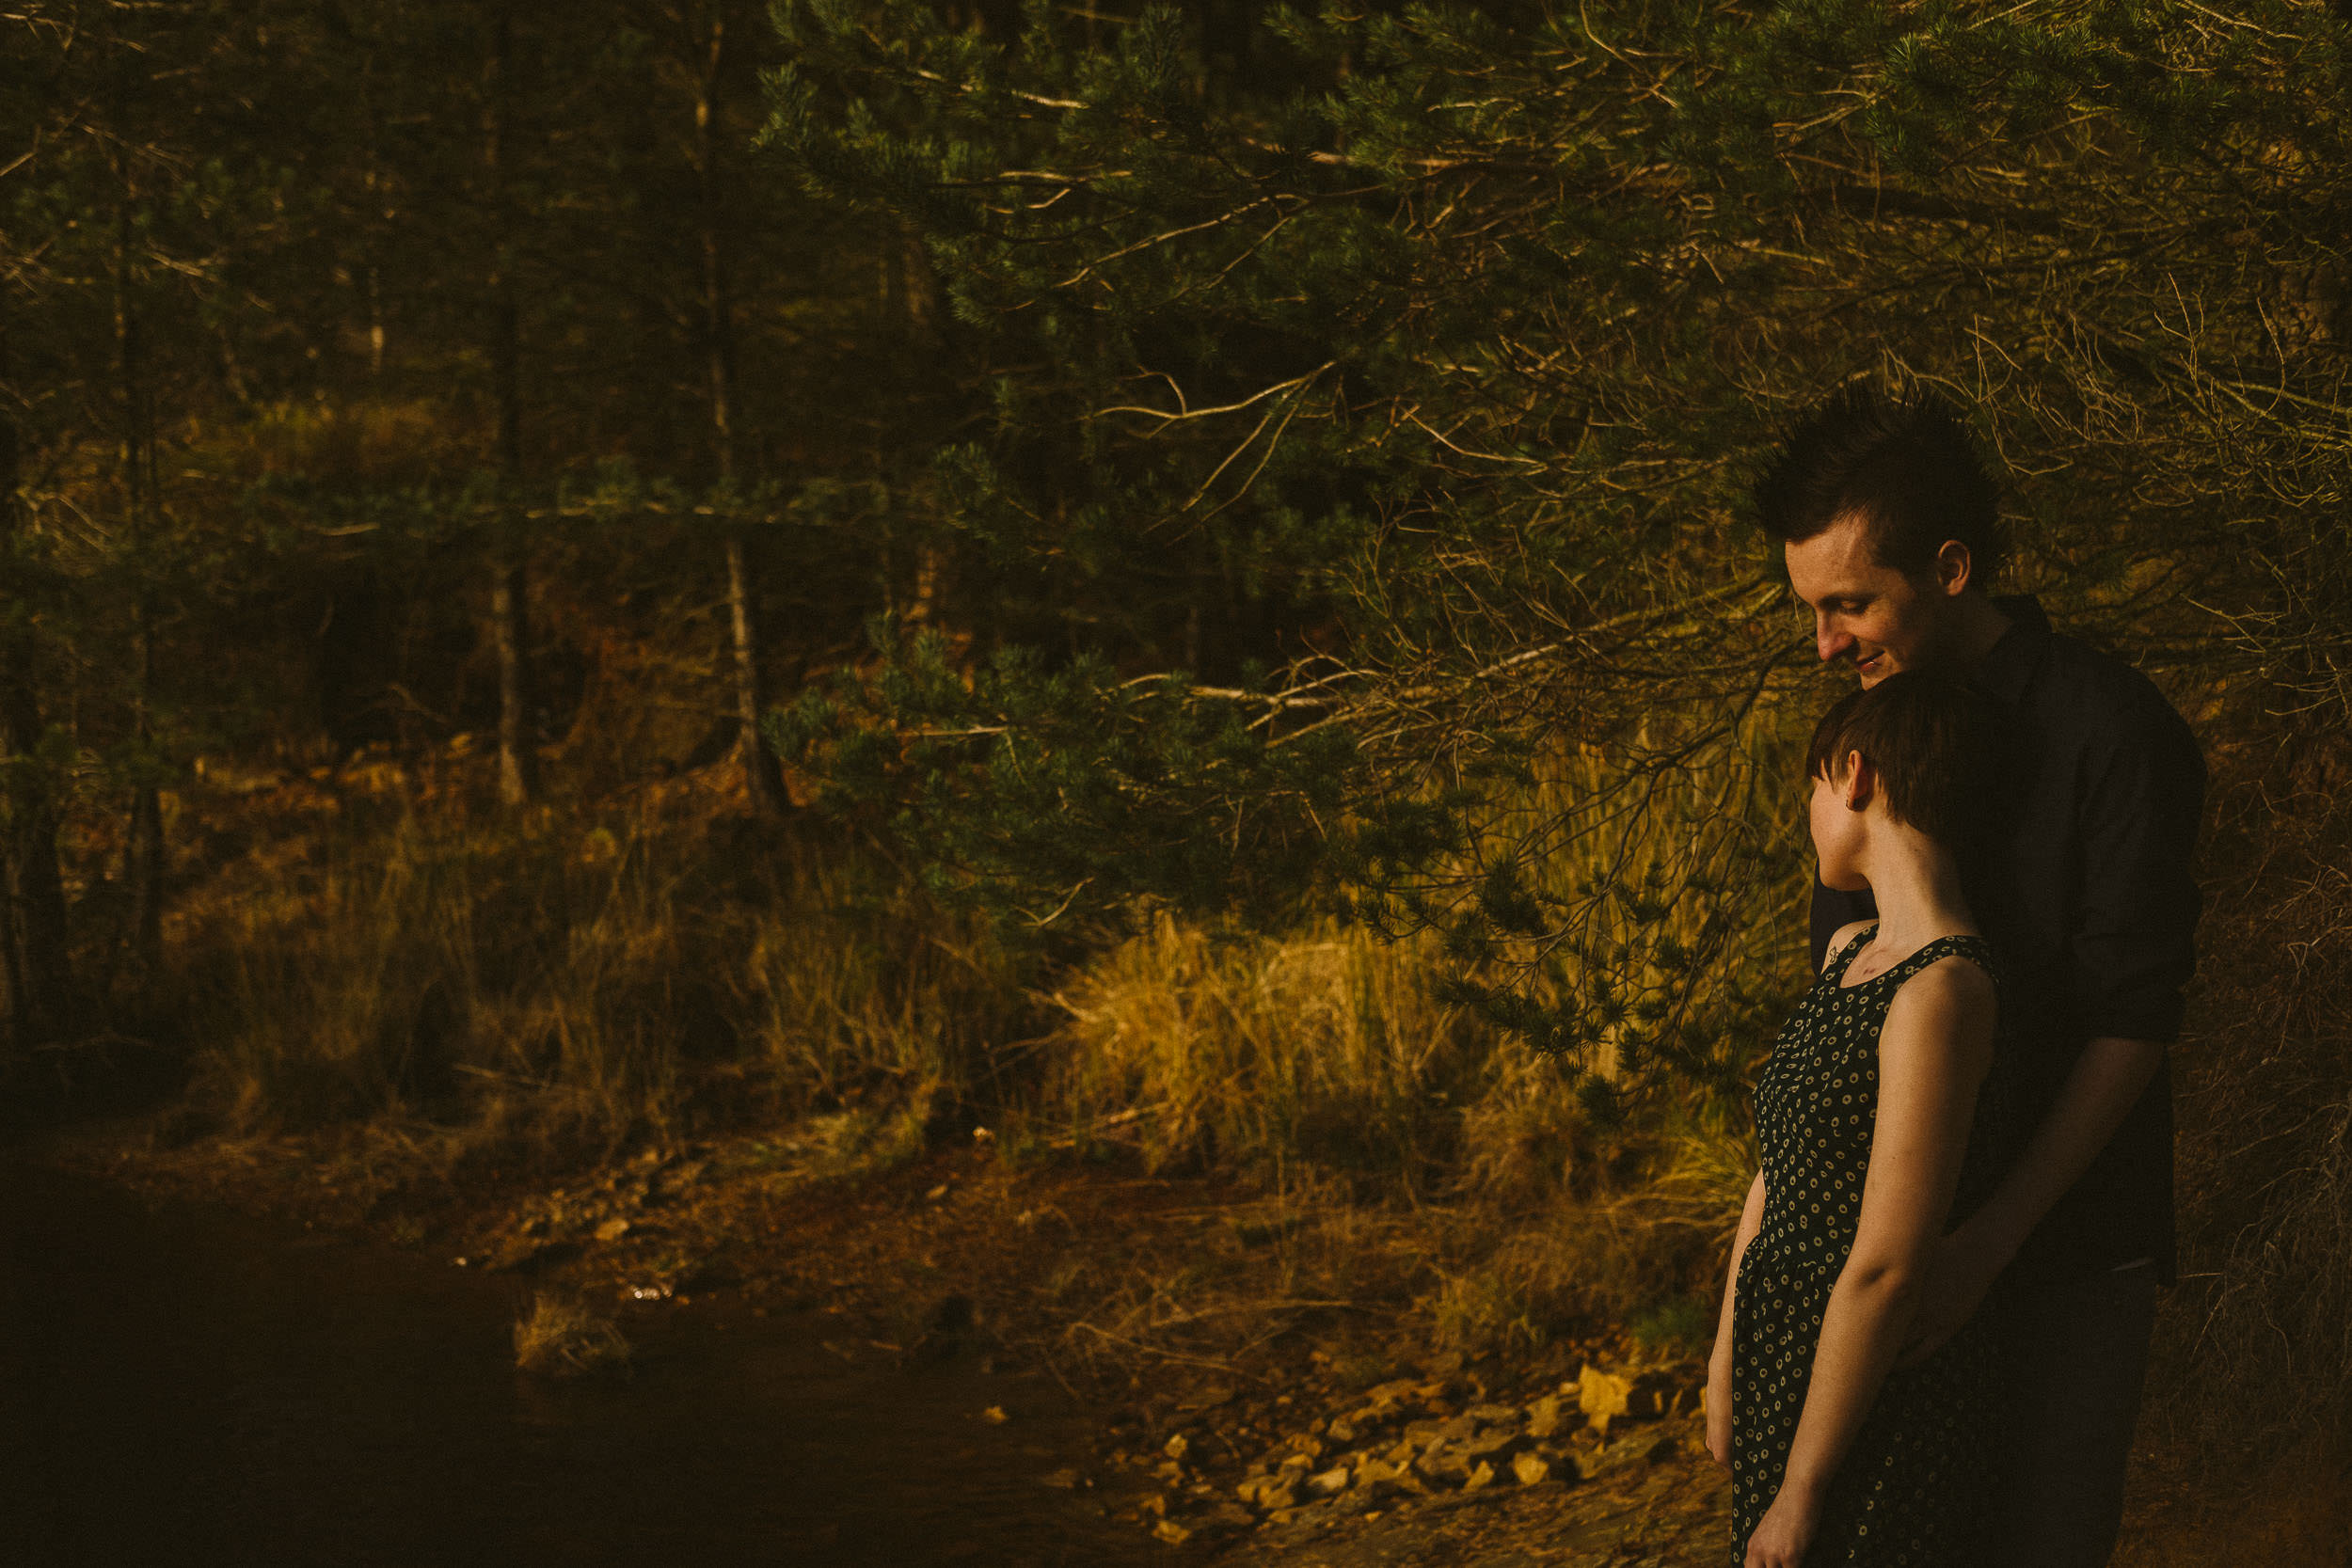 Romantic photo of girl leaning against guy with trees in the background